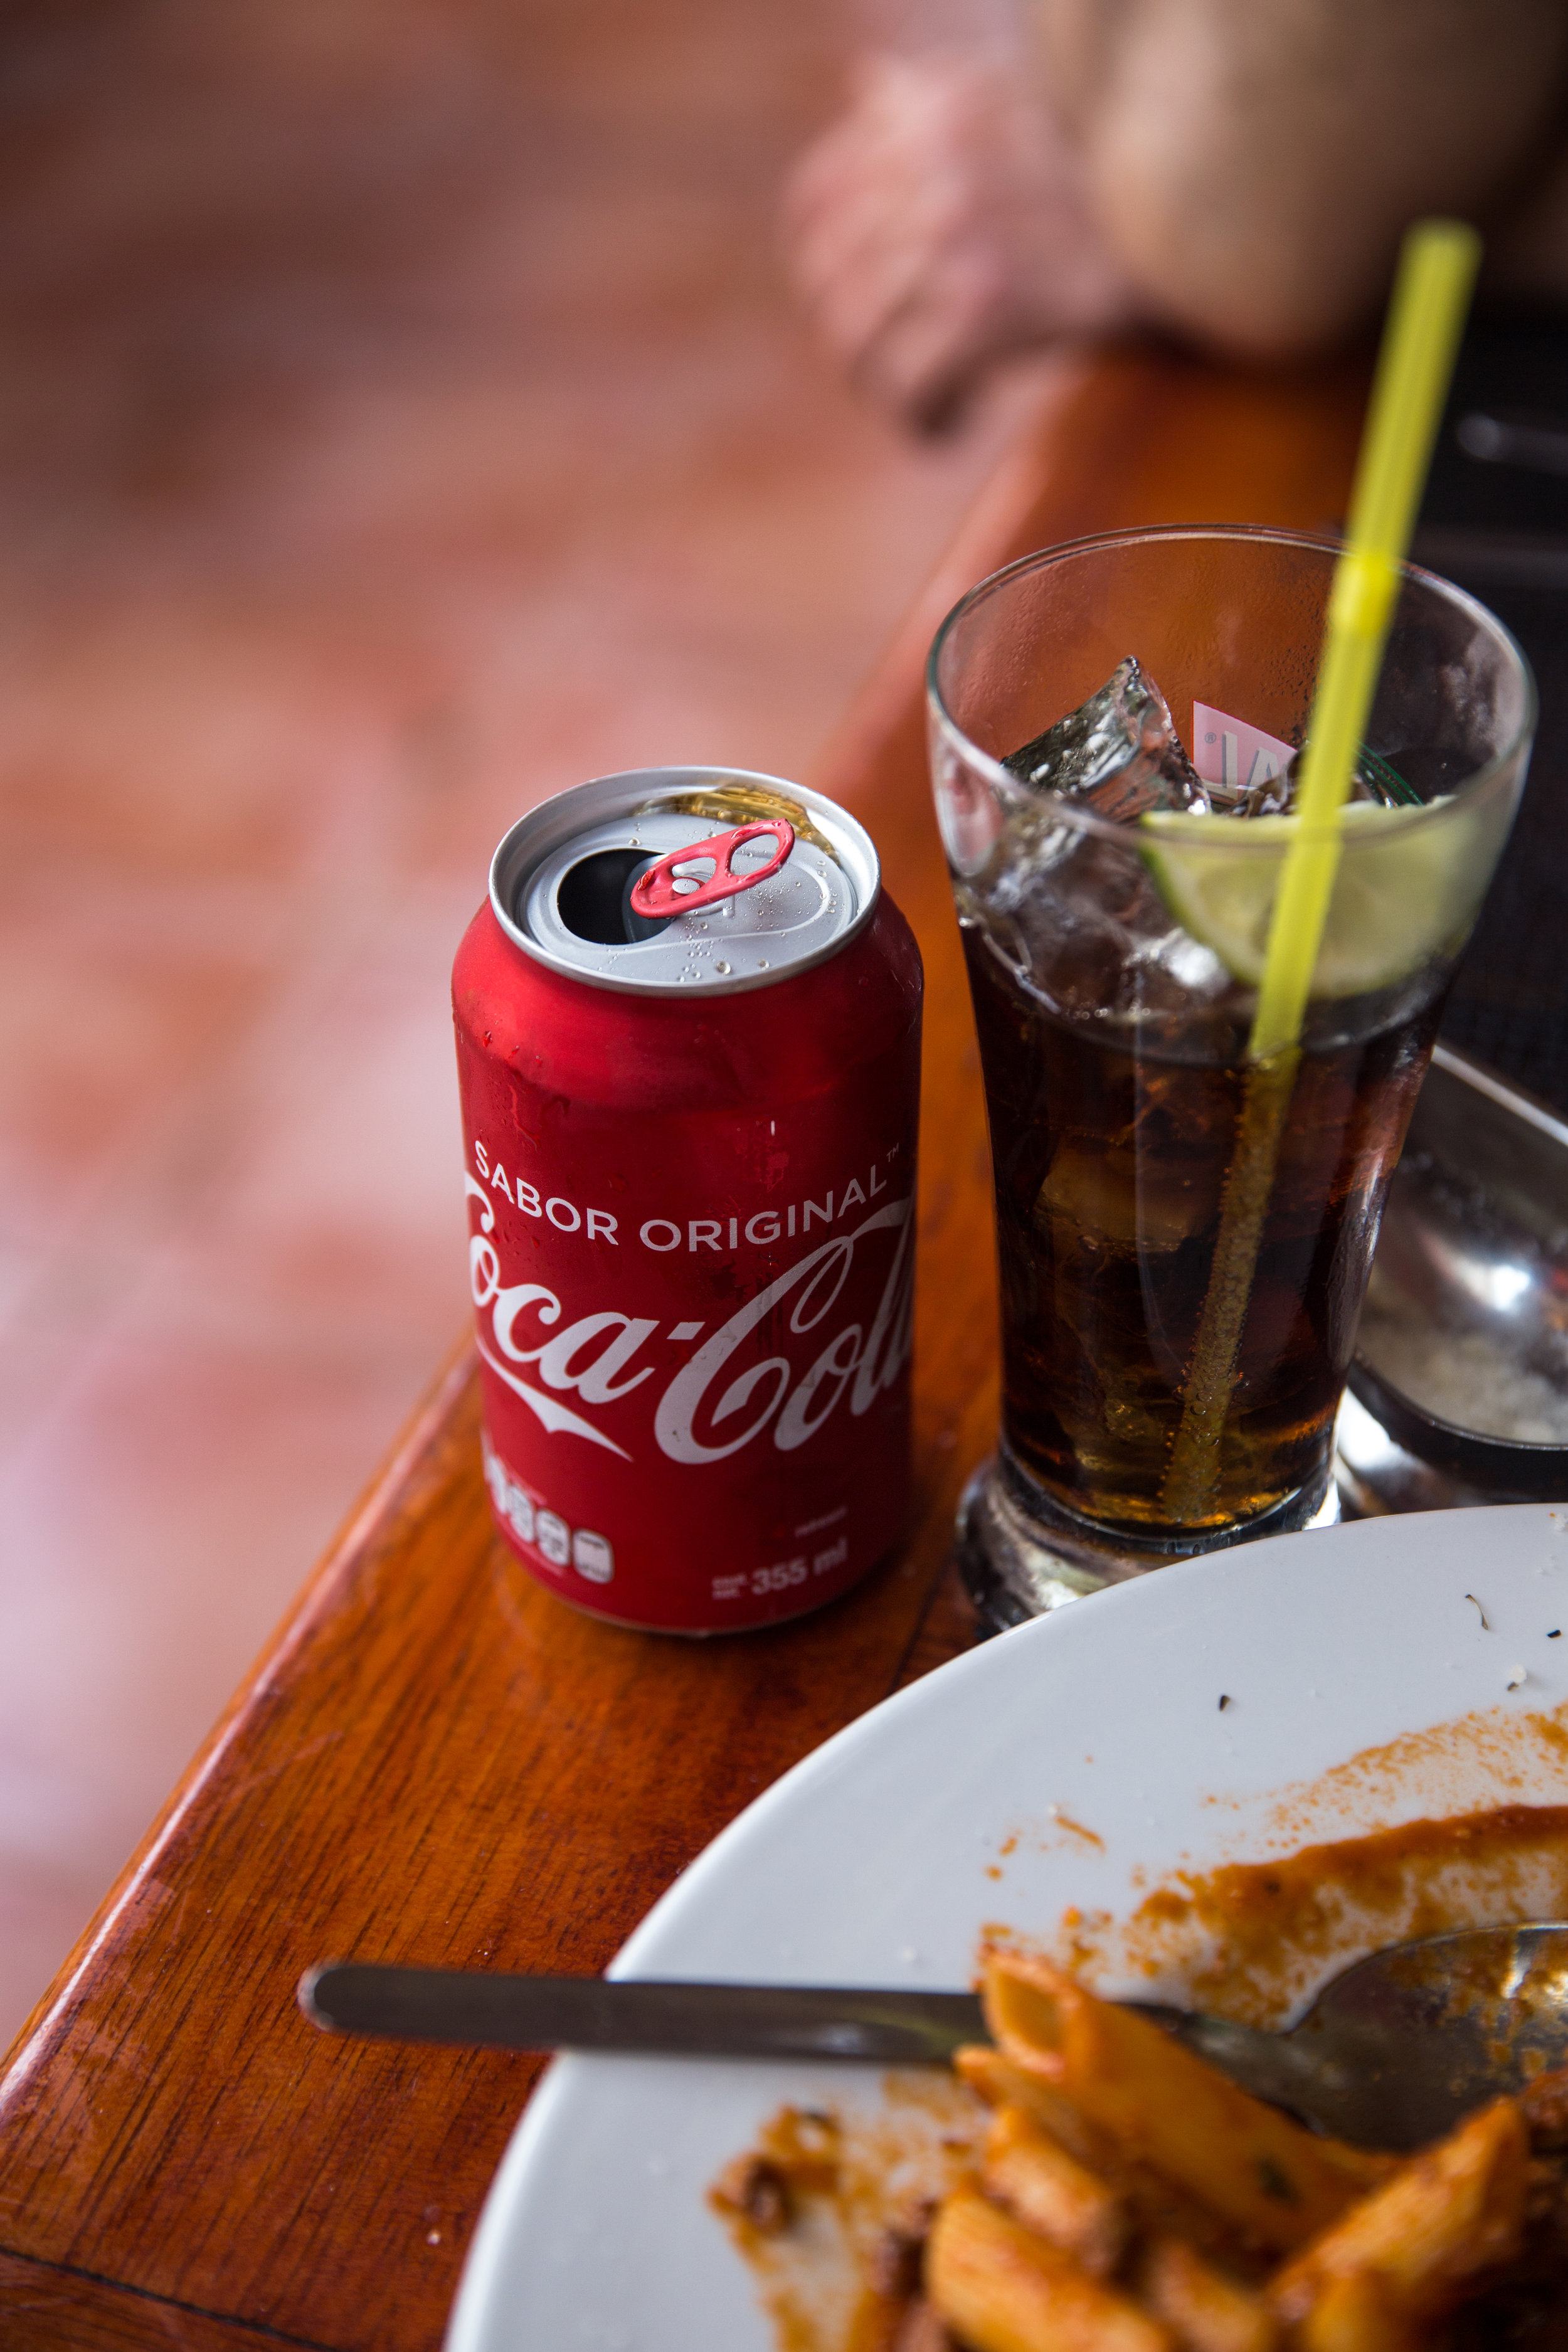 Apparently Mexican coke isn't as much a rarity in Cuba.